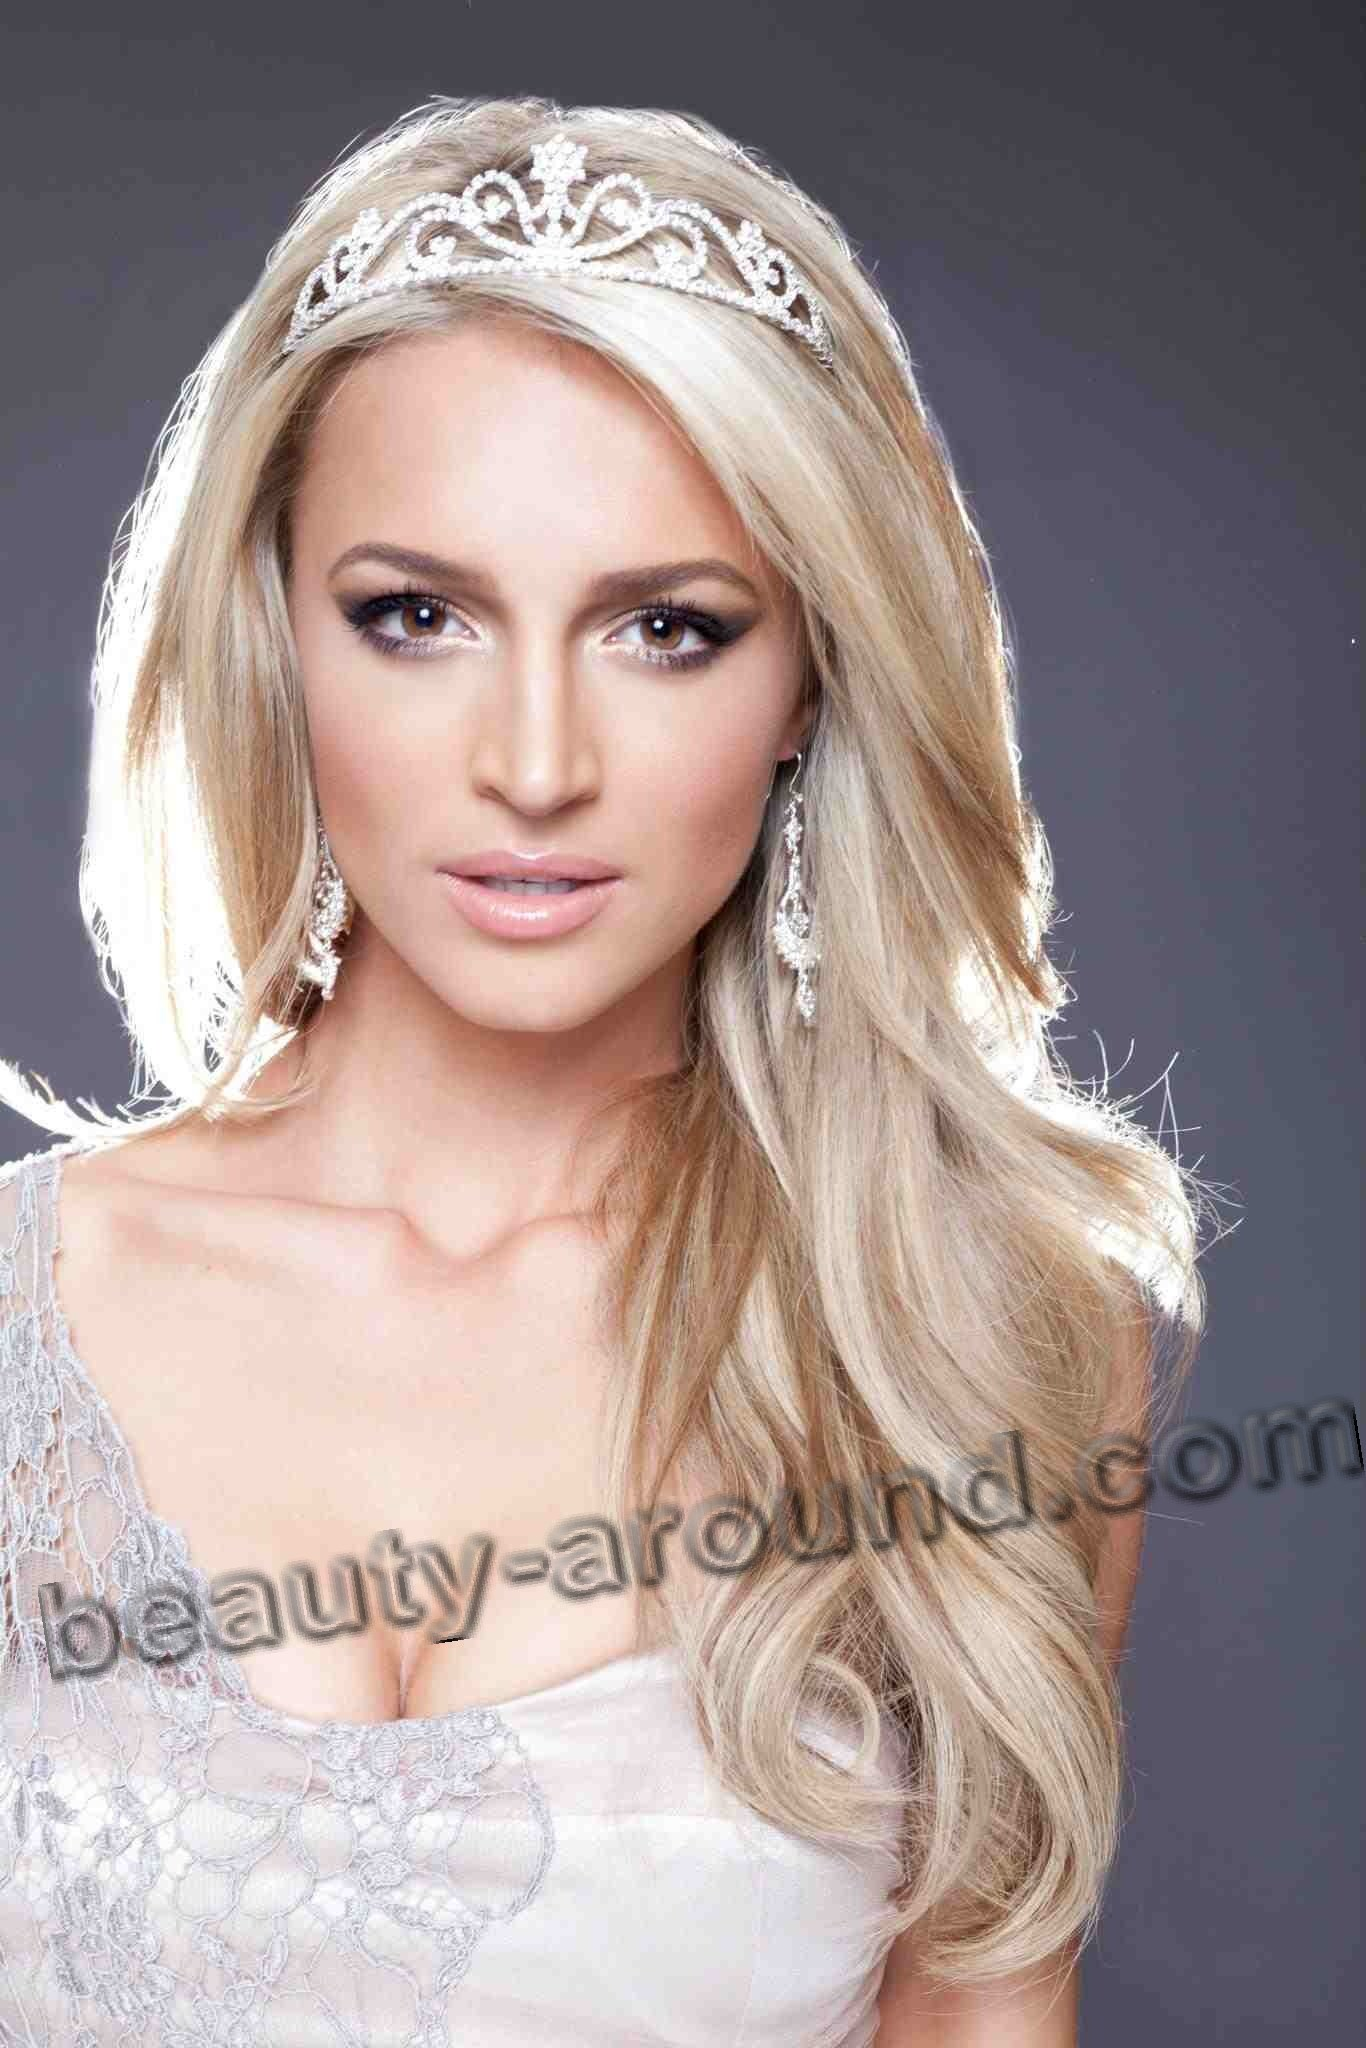 Beautiful South african women, Melinda Bam кMiss South Africa 2011 photo